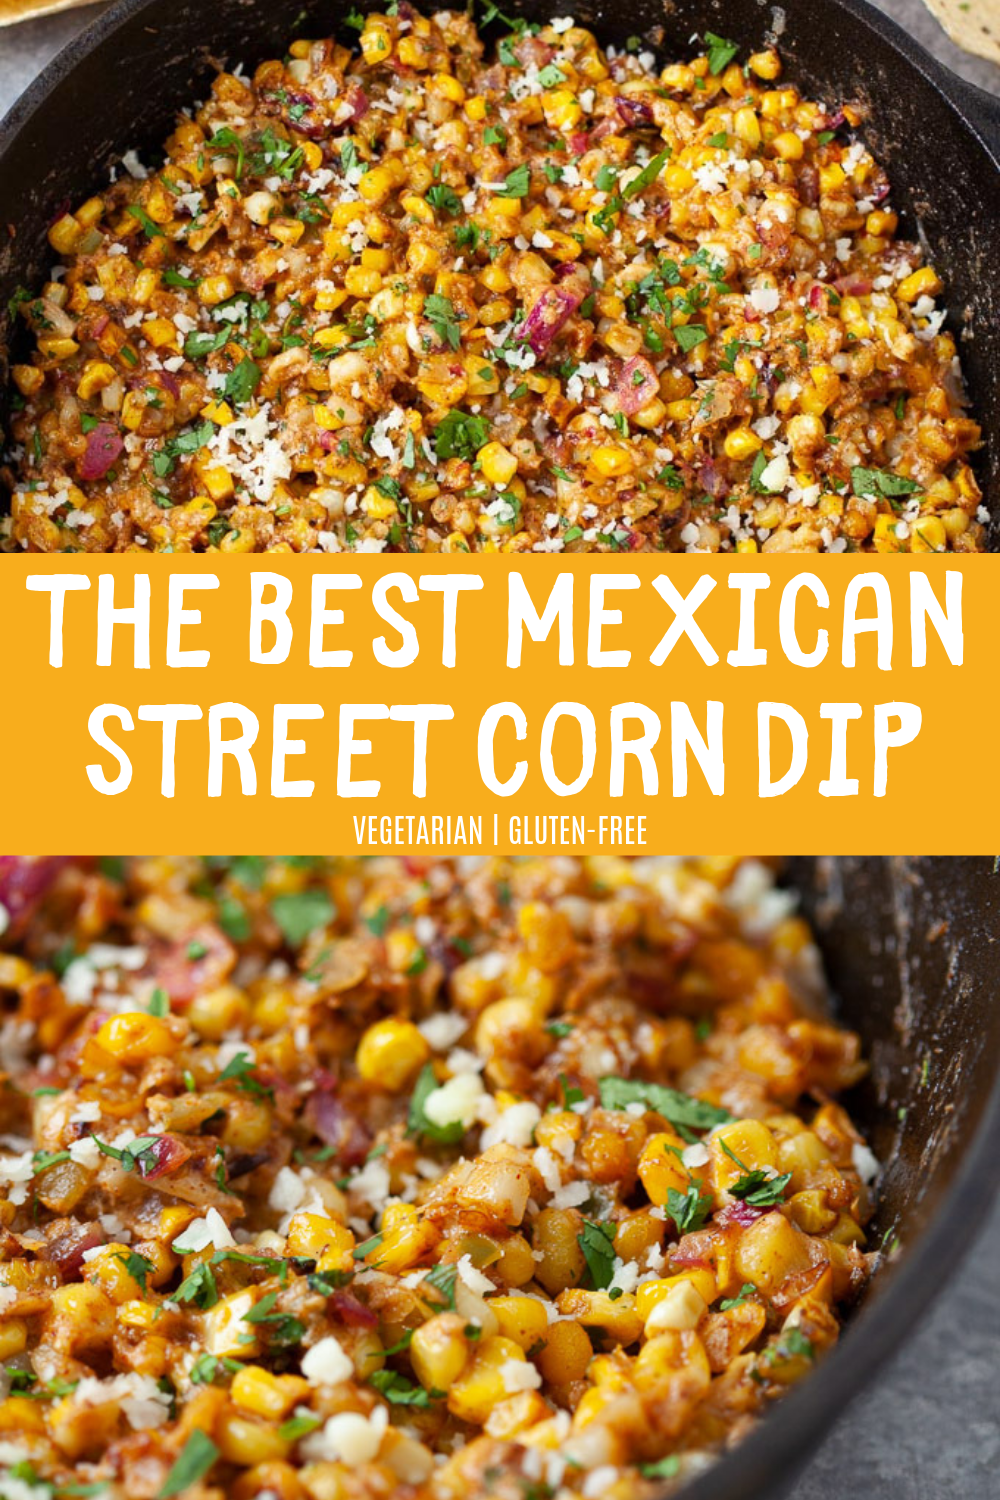 The Best Mexican Street Corn Dip #mexicanstreetcorn